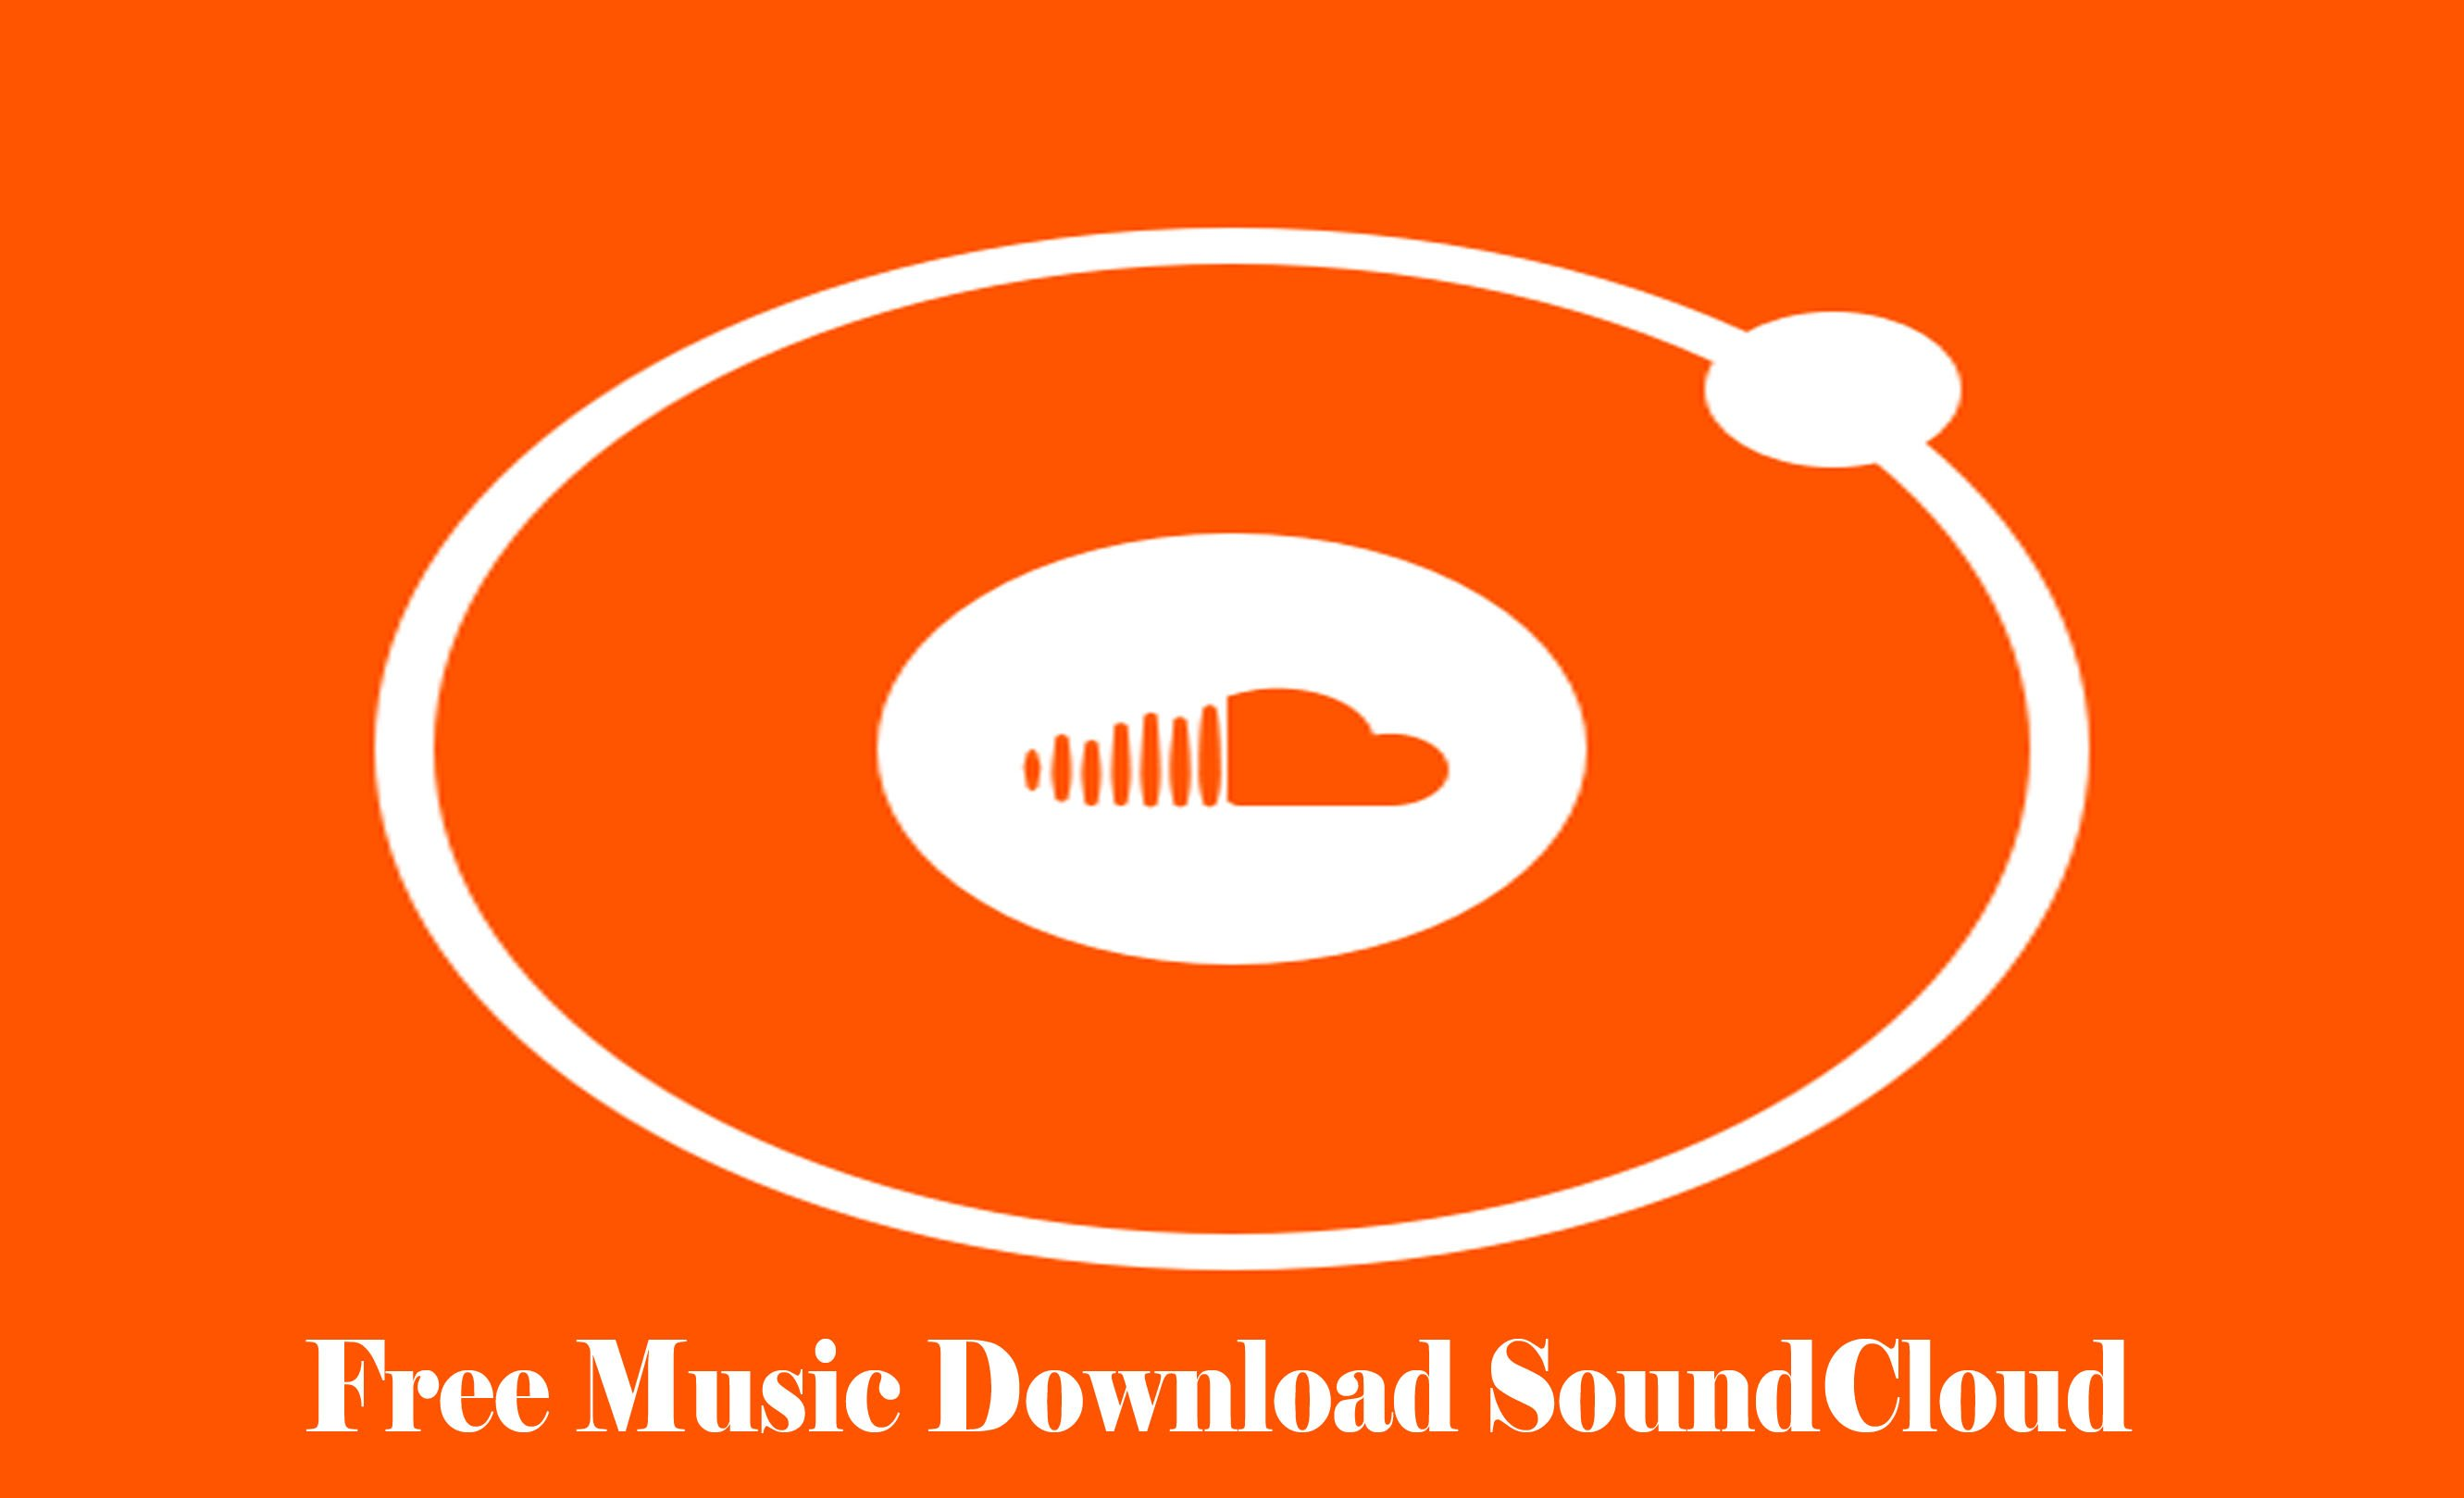 Free Music Download SoundCloud - SoundCloud Songs